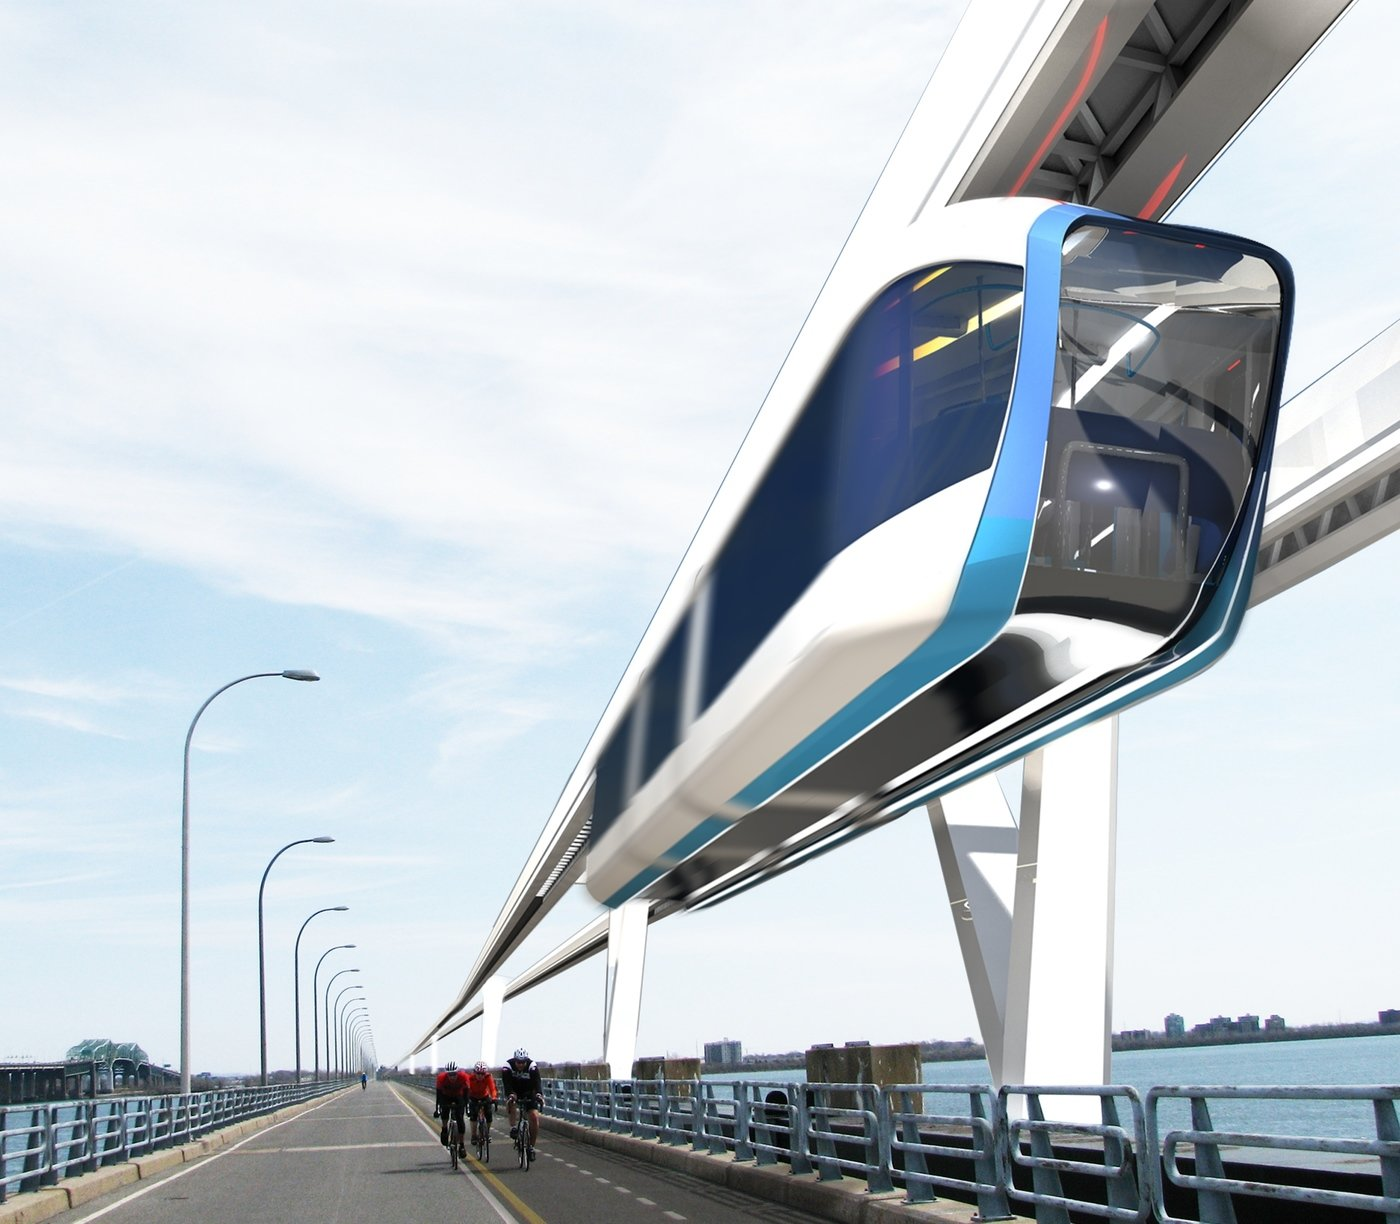 MGV Québec: The High Speed Monorail By Frederic Laurin